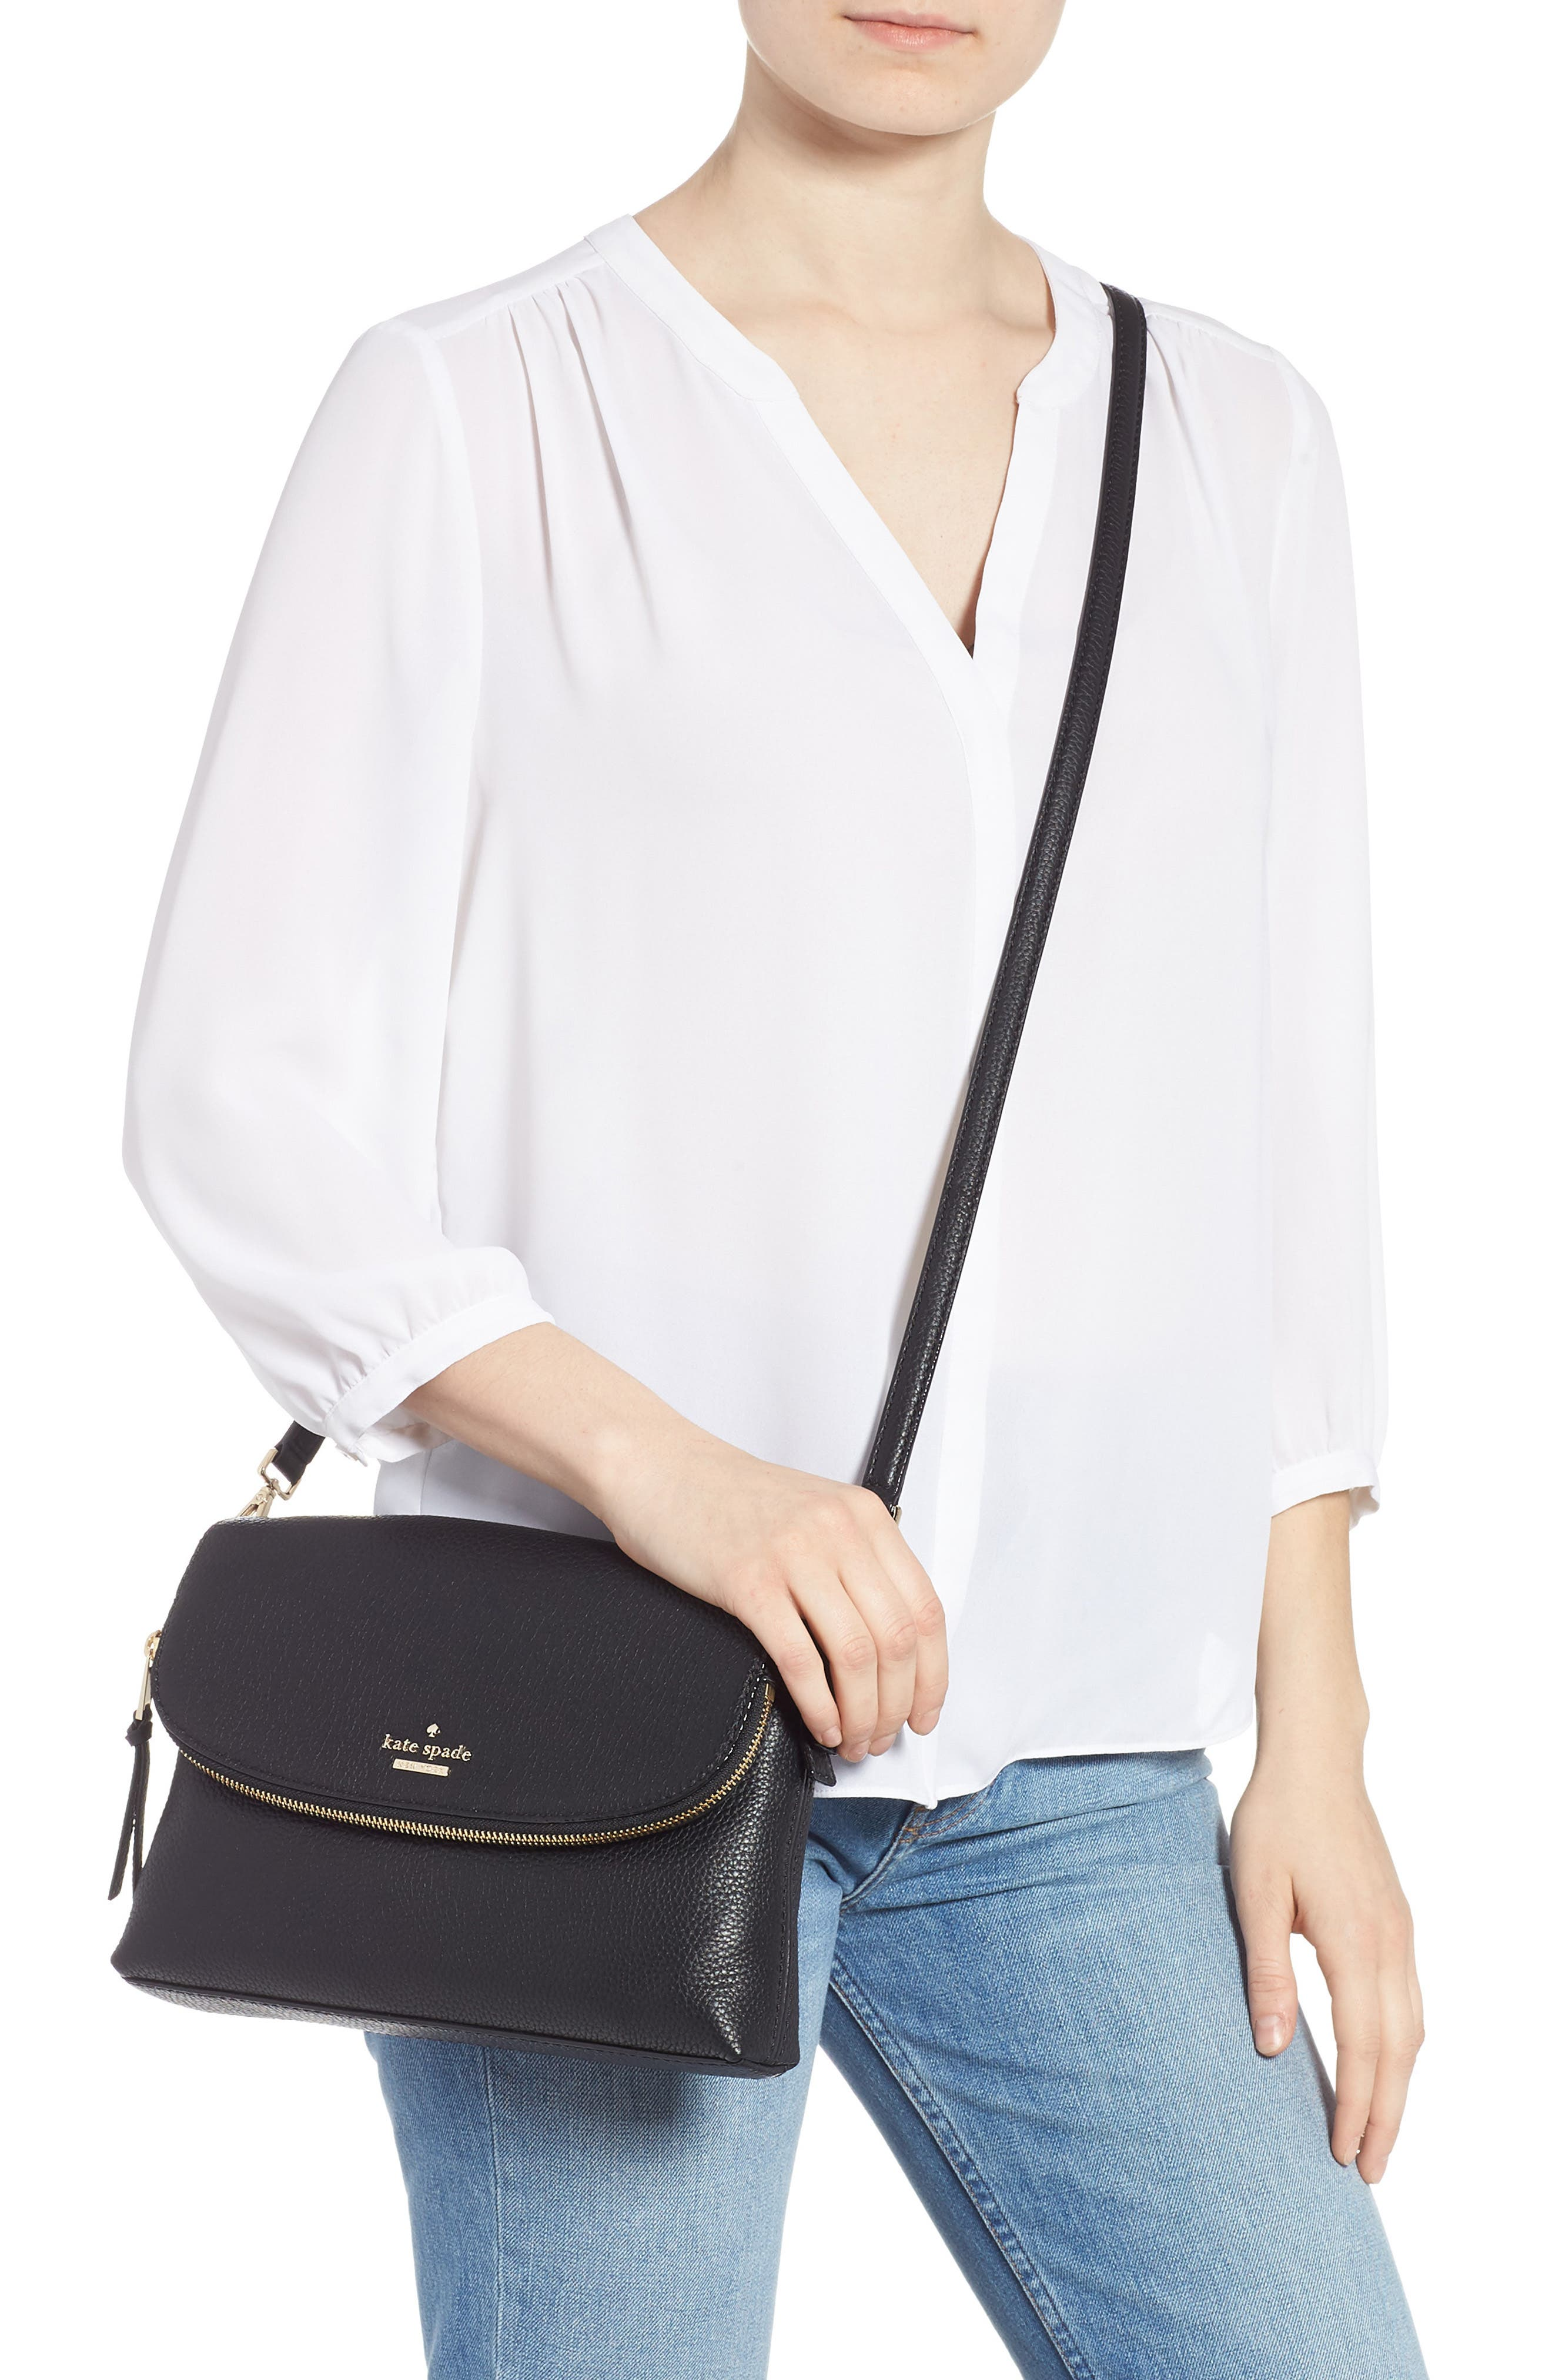 jackson street - harlyn leather crossbody bag,                             Alternate thumbnail 2, color,                             BLACK